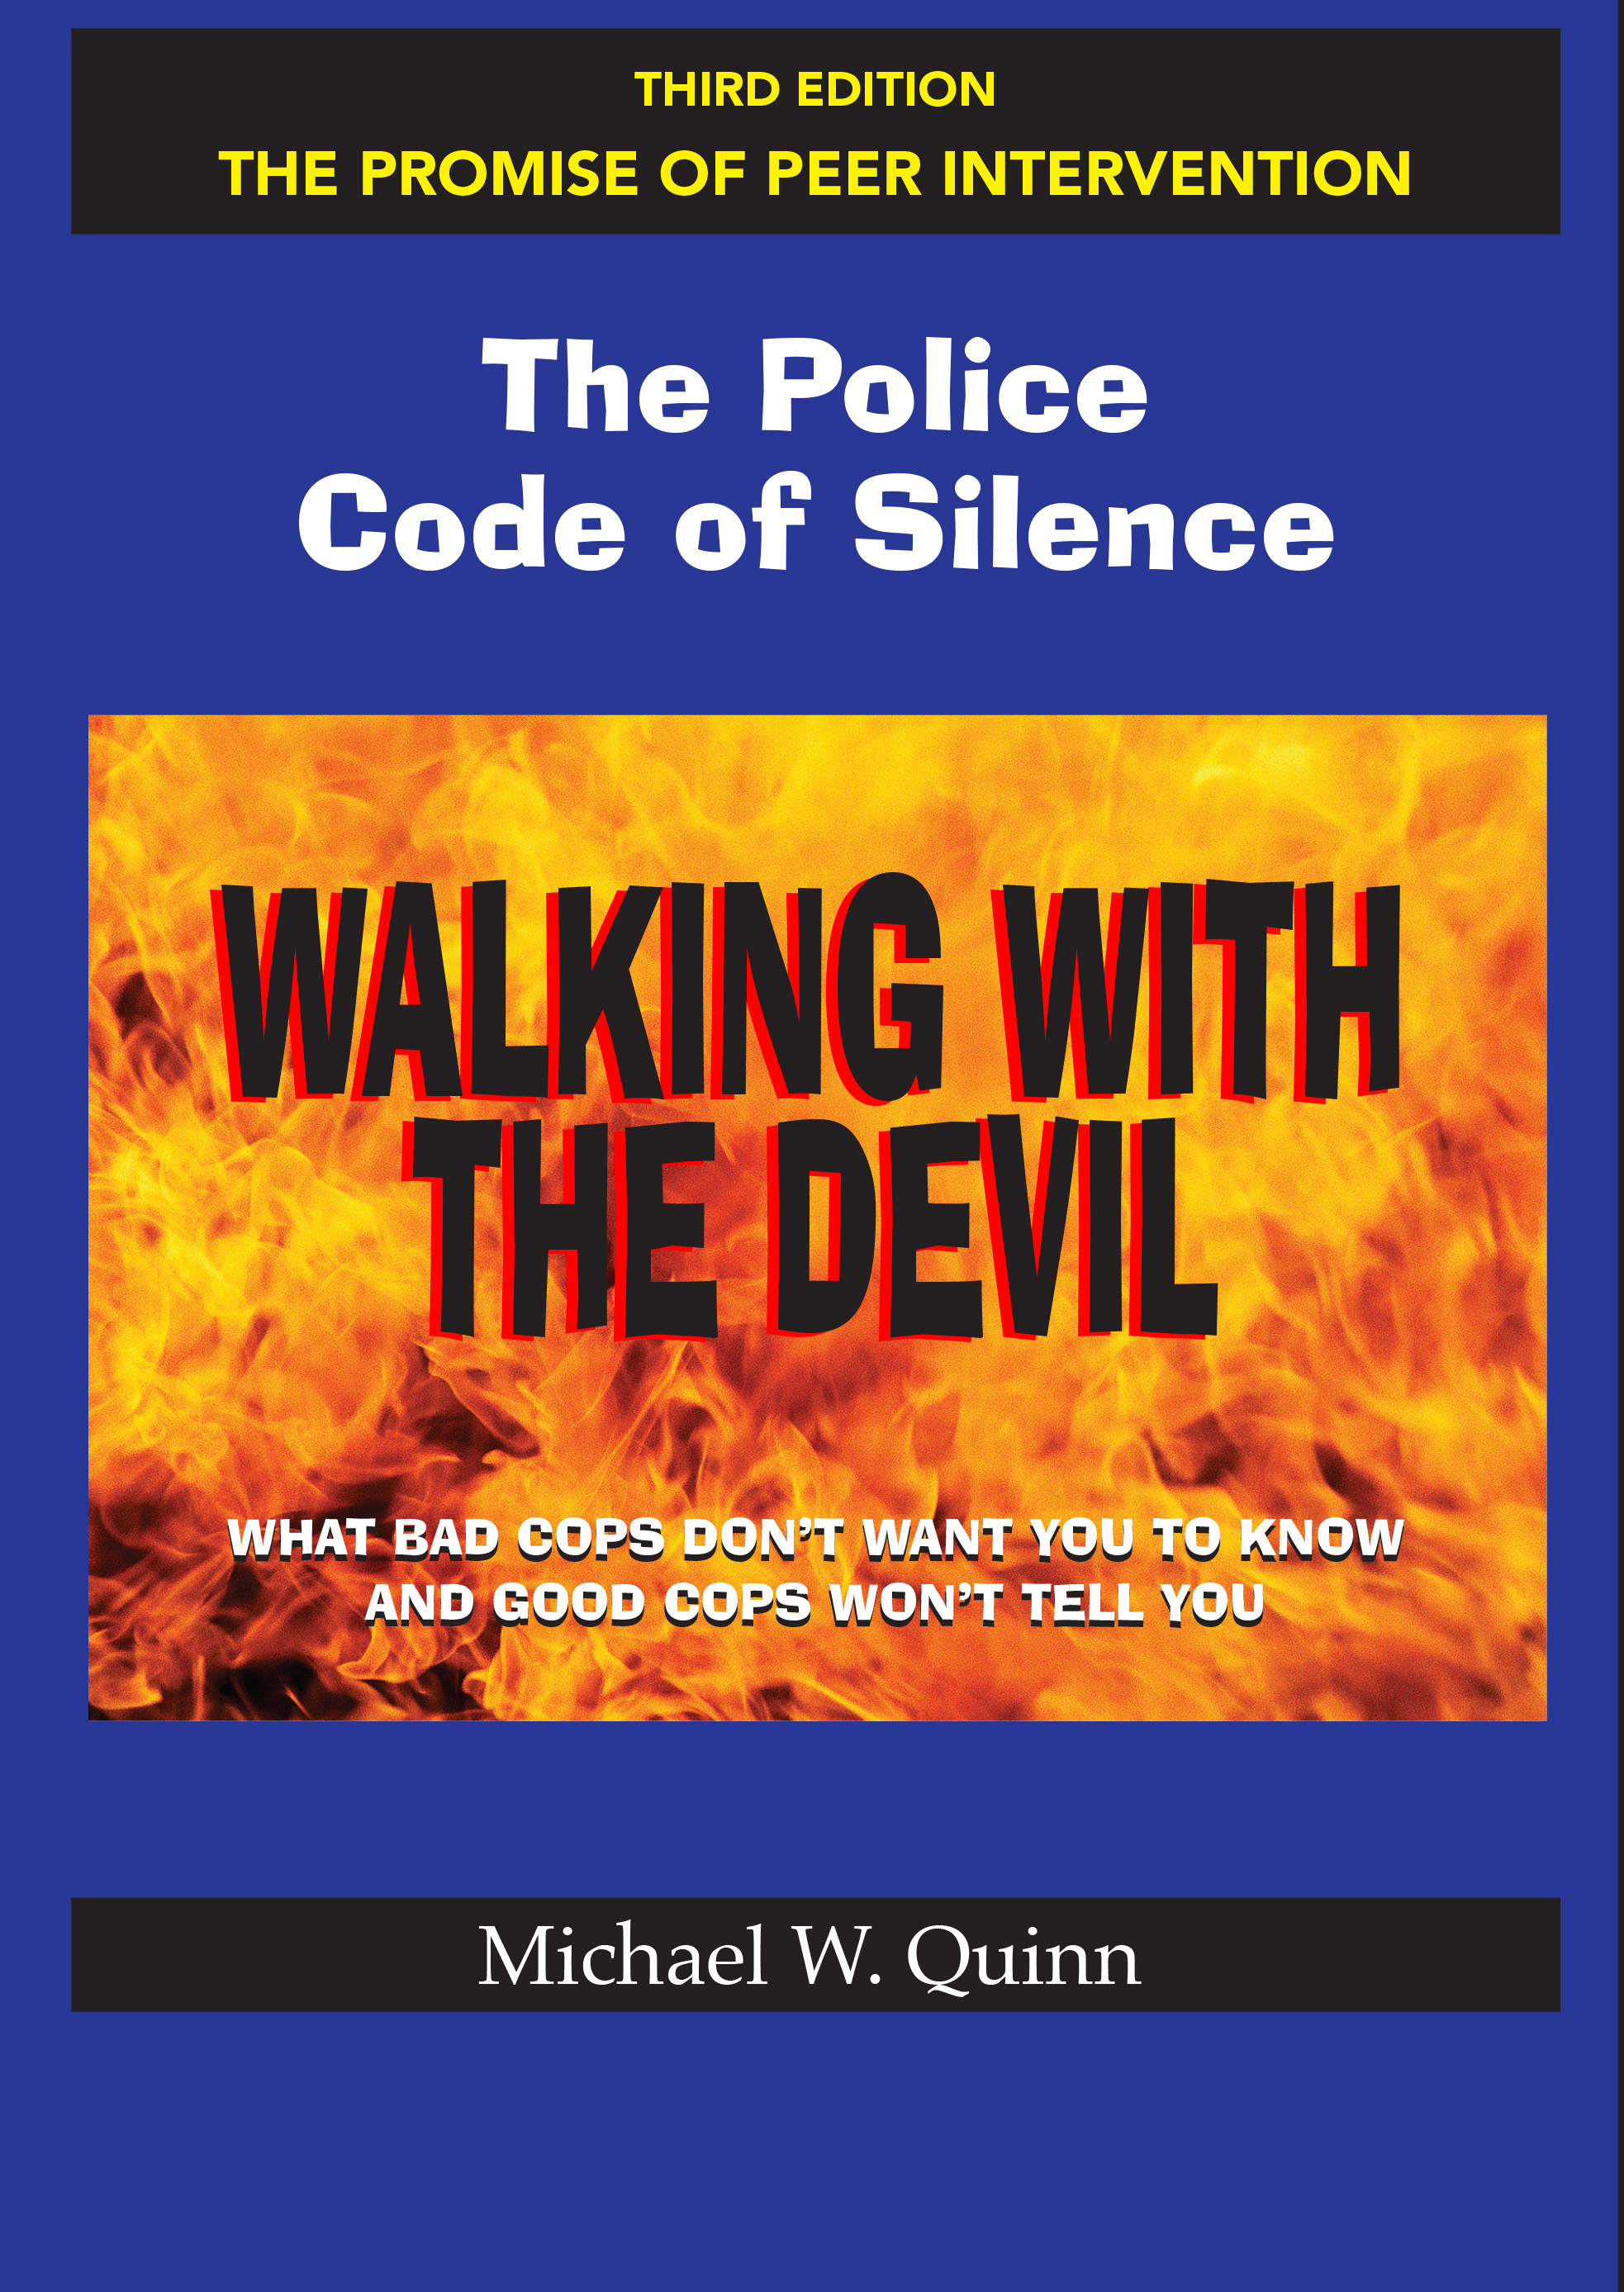 Walking With the Devil: The Police Code of Silence - The Promise of Peer Intervention